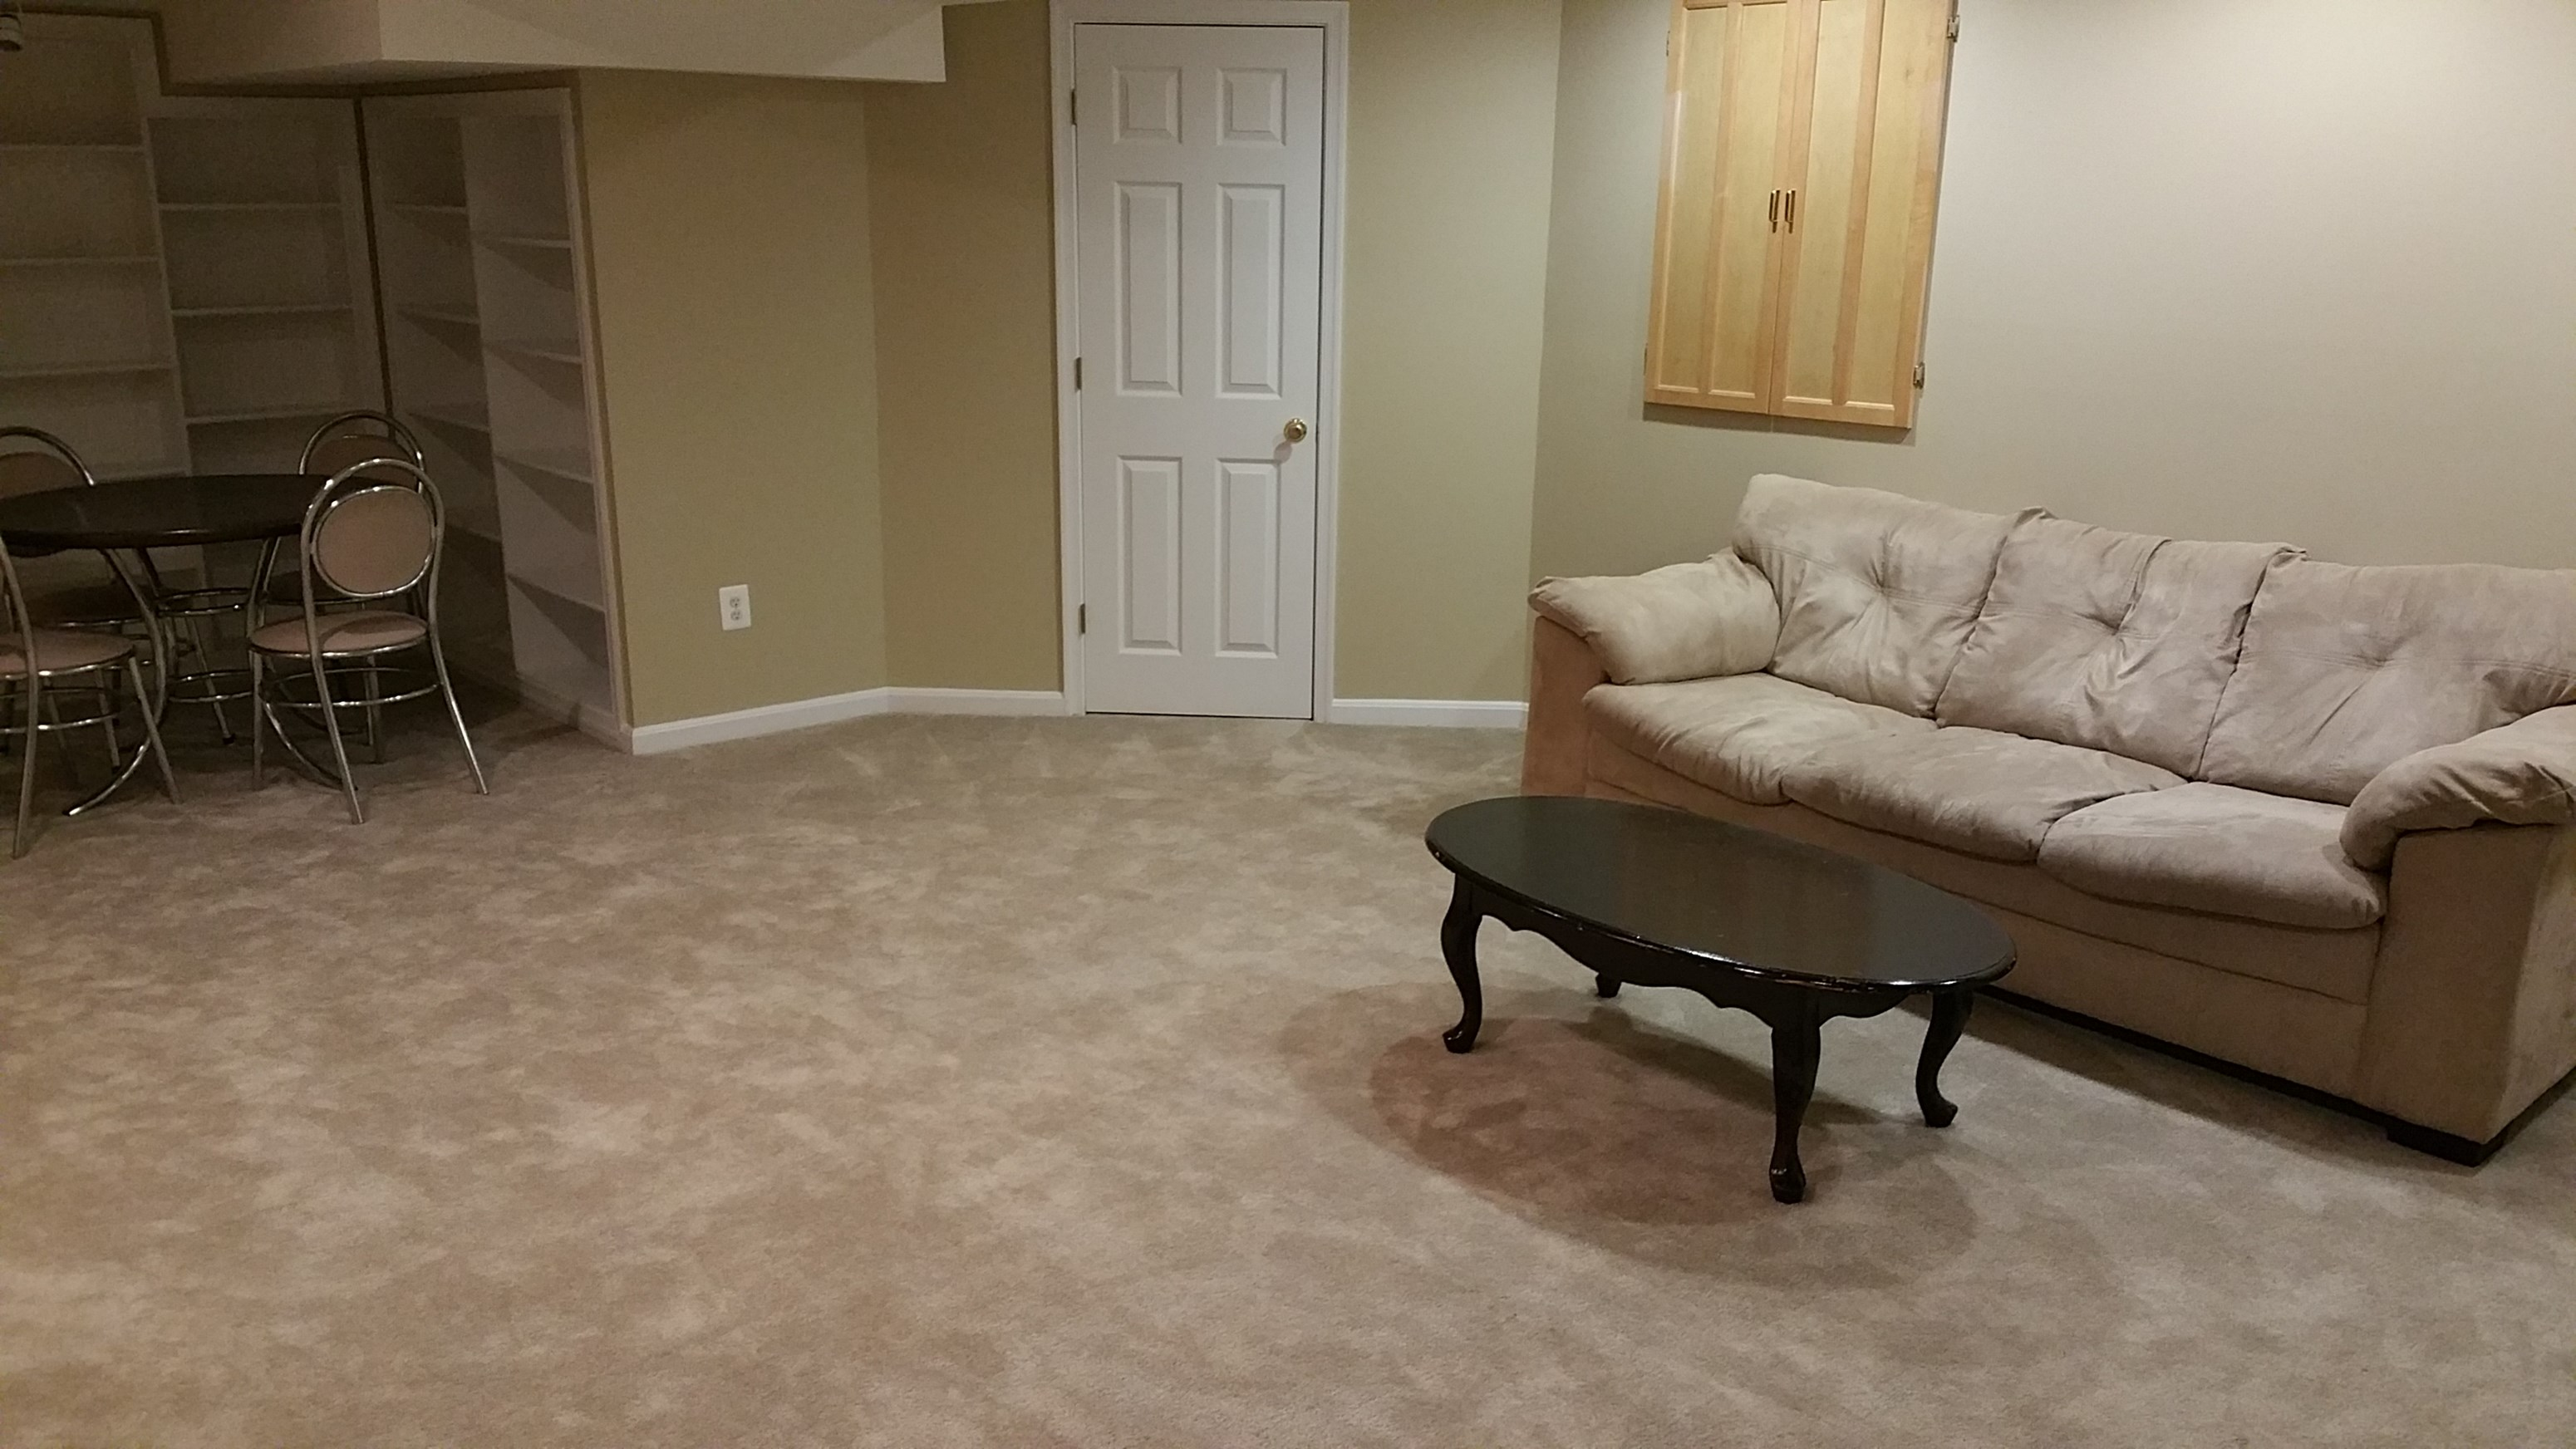 Separate Room In Basement In Herndon, Close To Major Employers In Reston,  Ashburn,